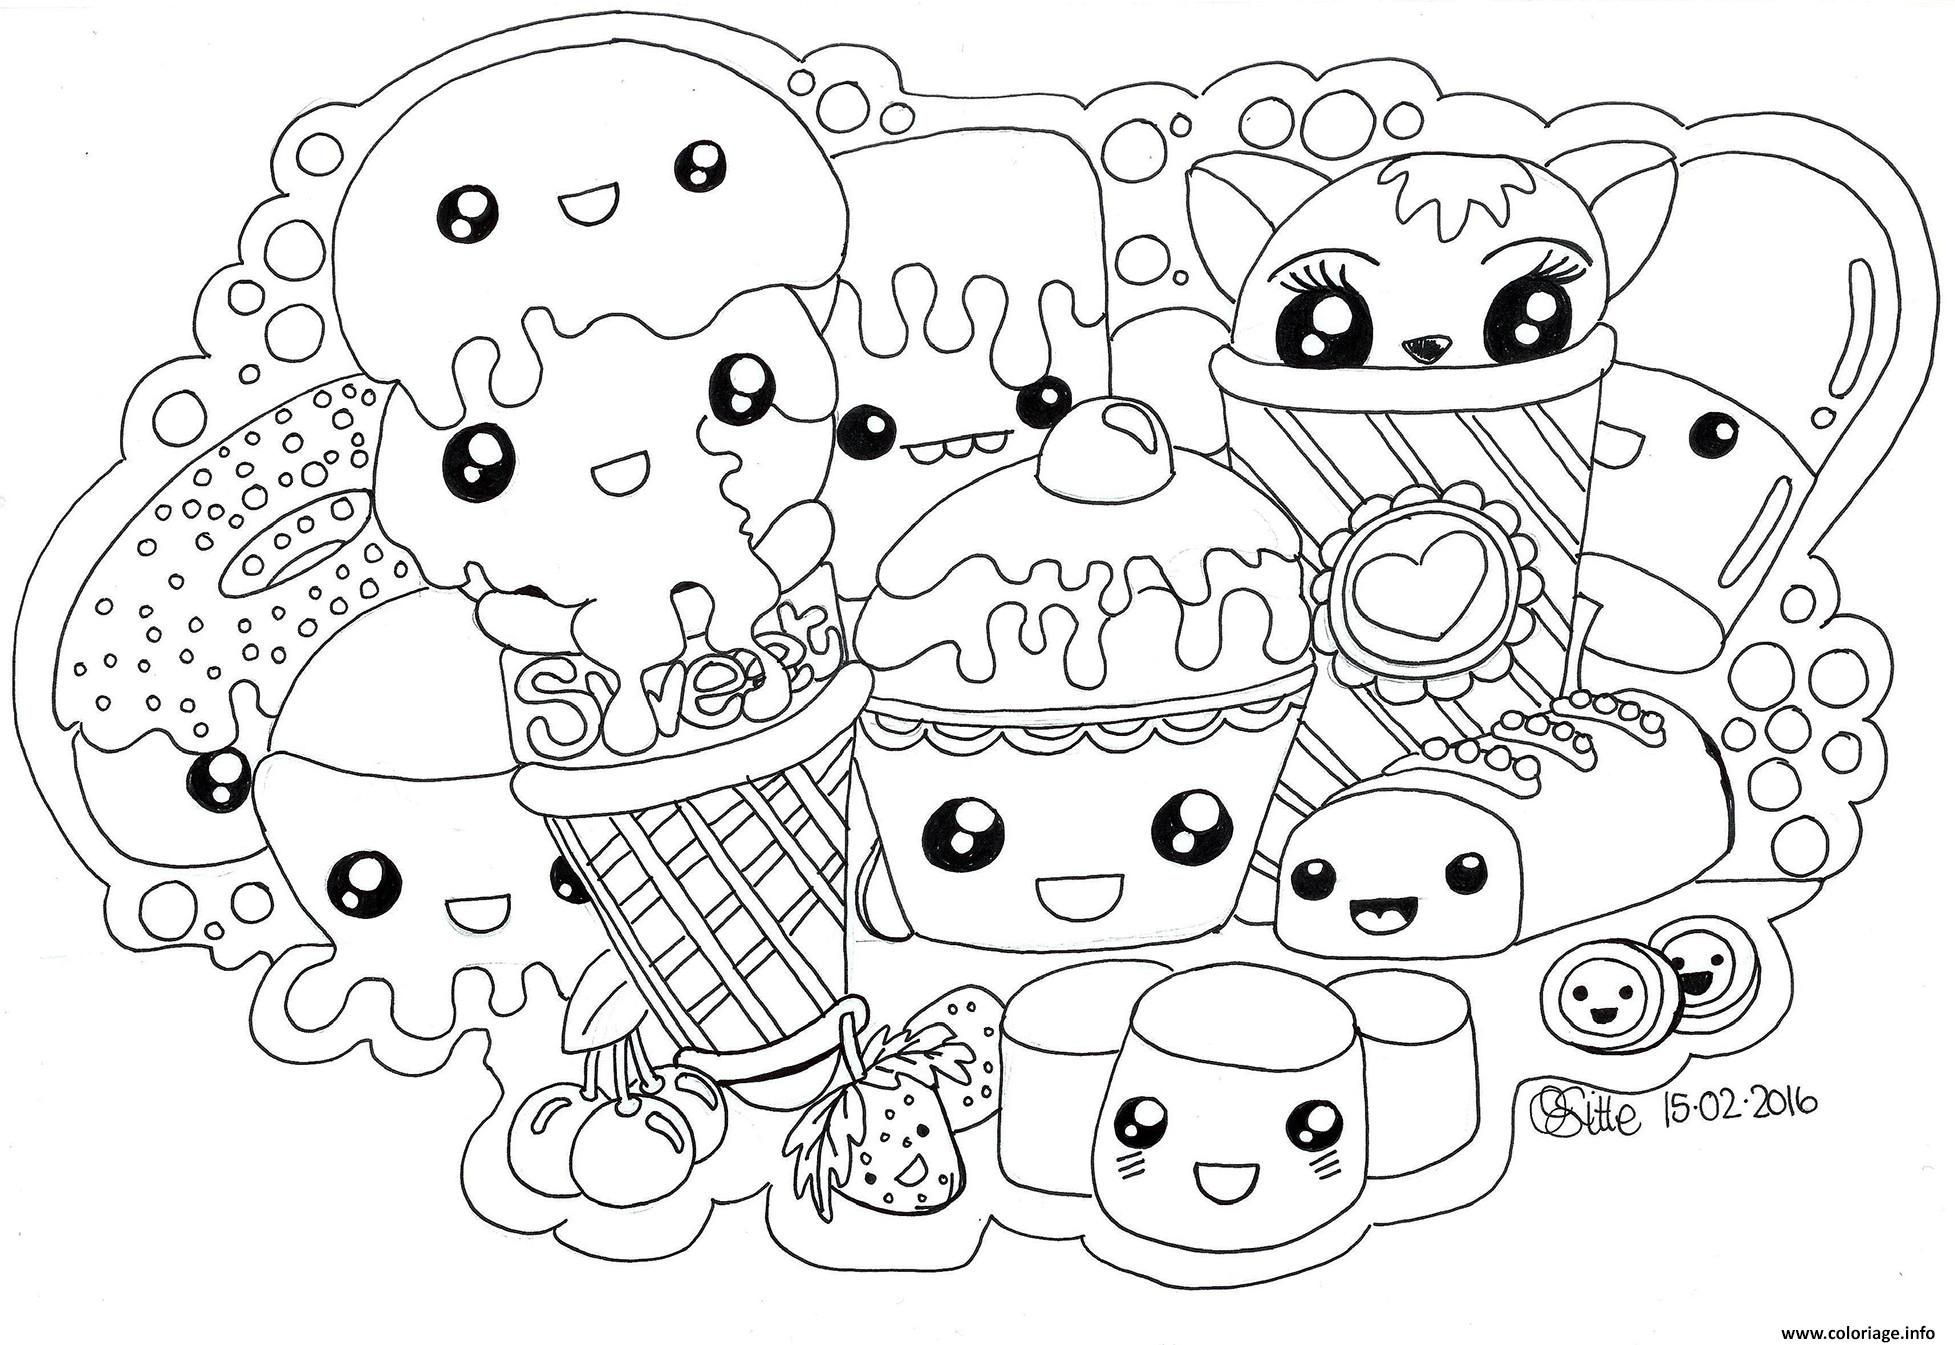 Coloriage Kawaii, Dessin Kawaii à Colorier